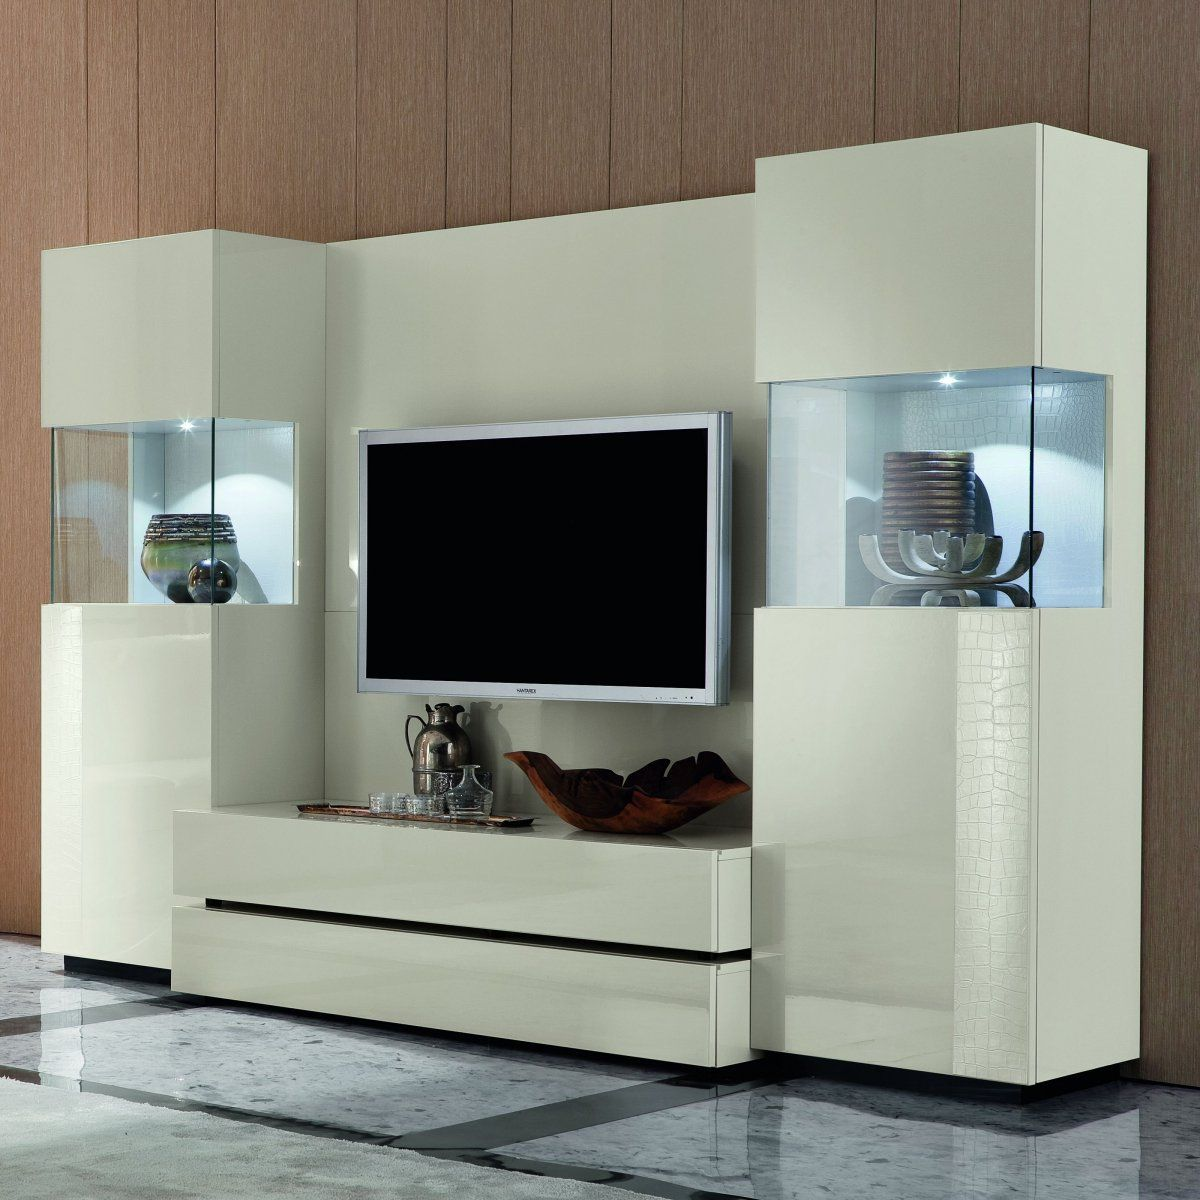 ikea white entertainment center | modern tv unit entertainment